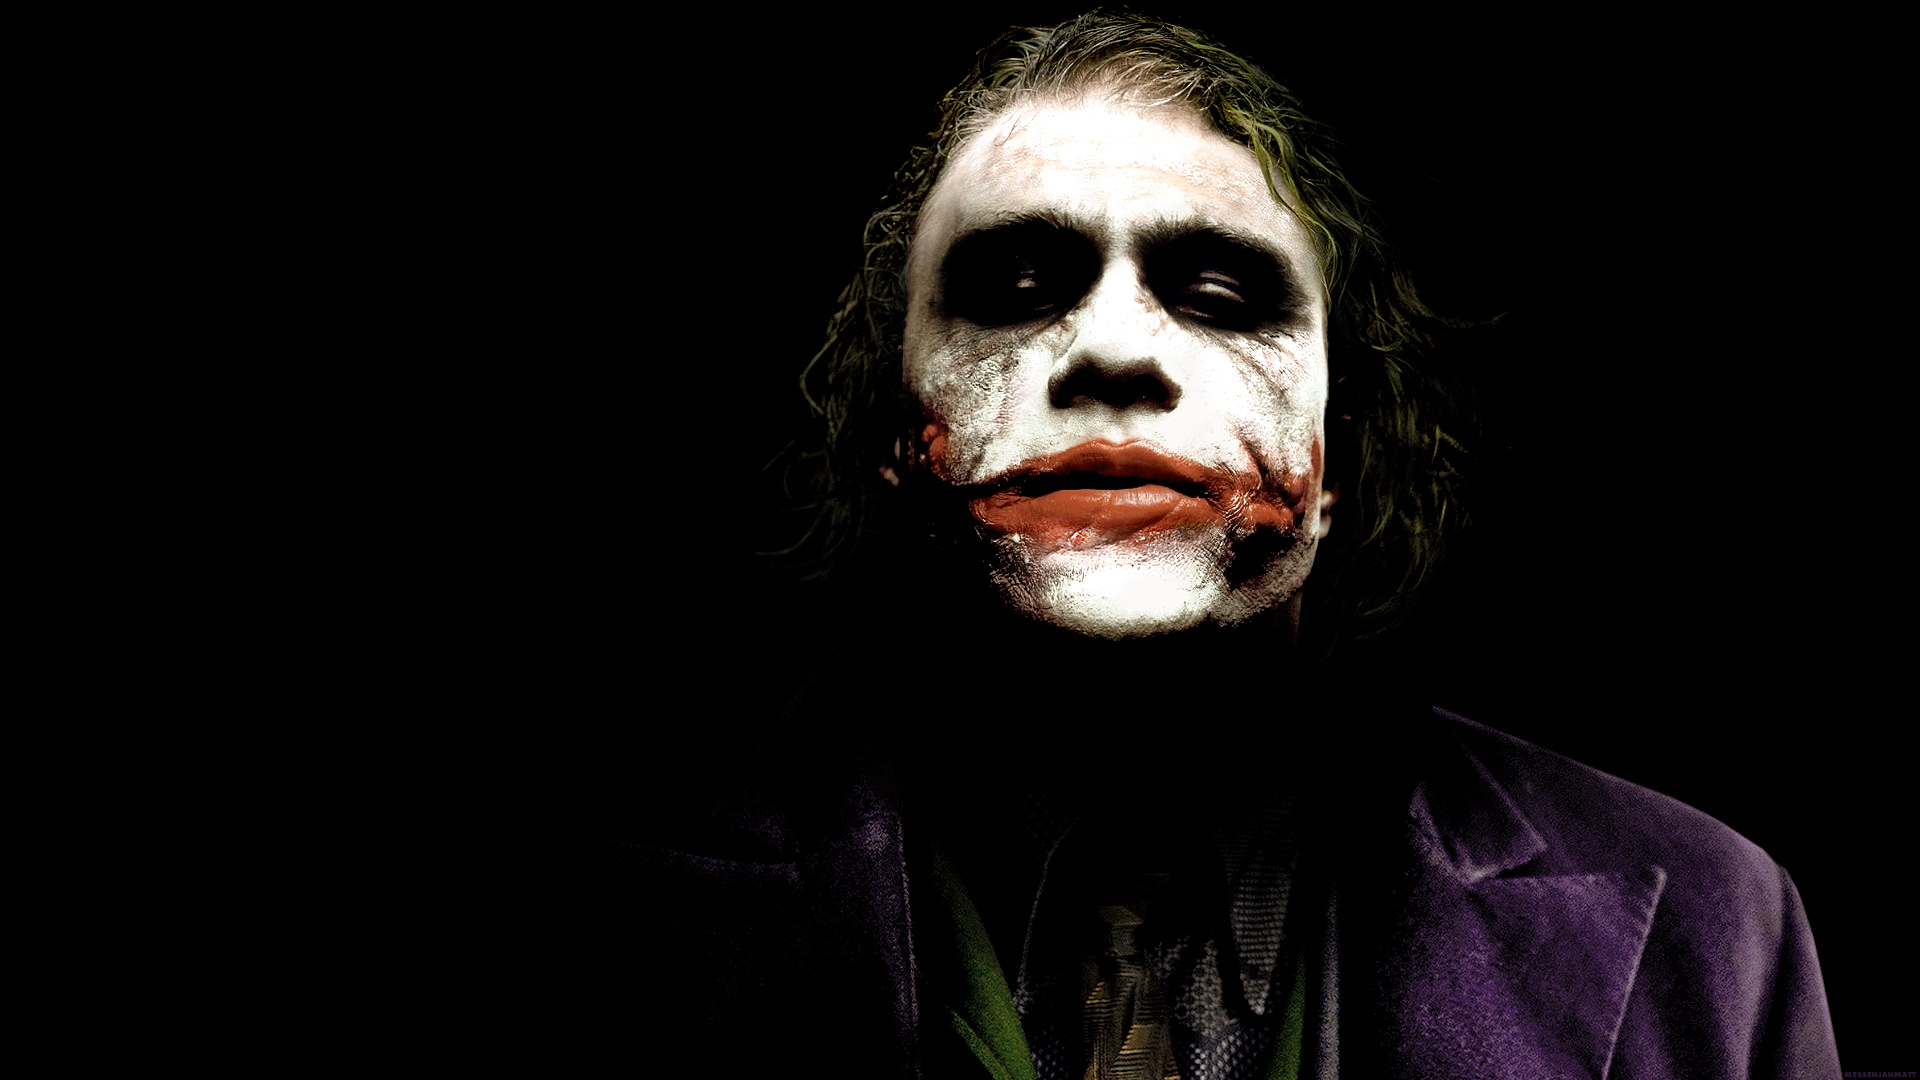 Joker Heath Ledger wallpaper   673629 1920x1080